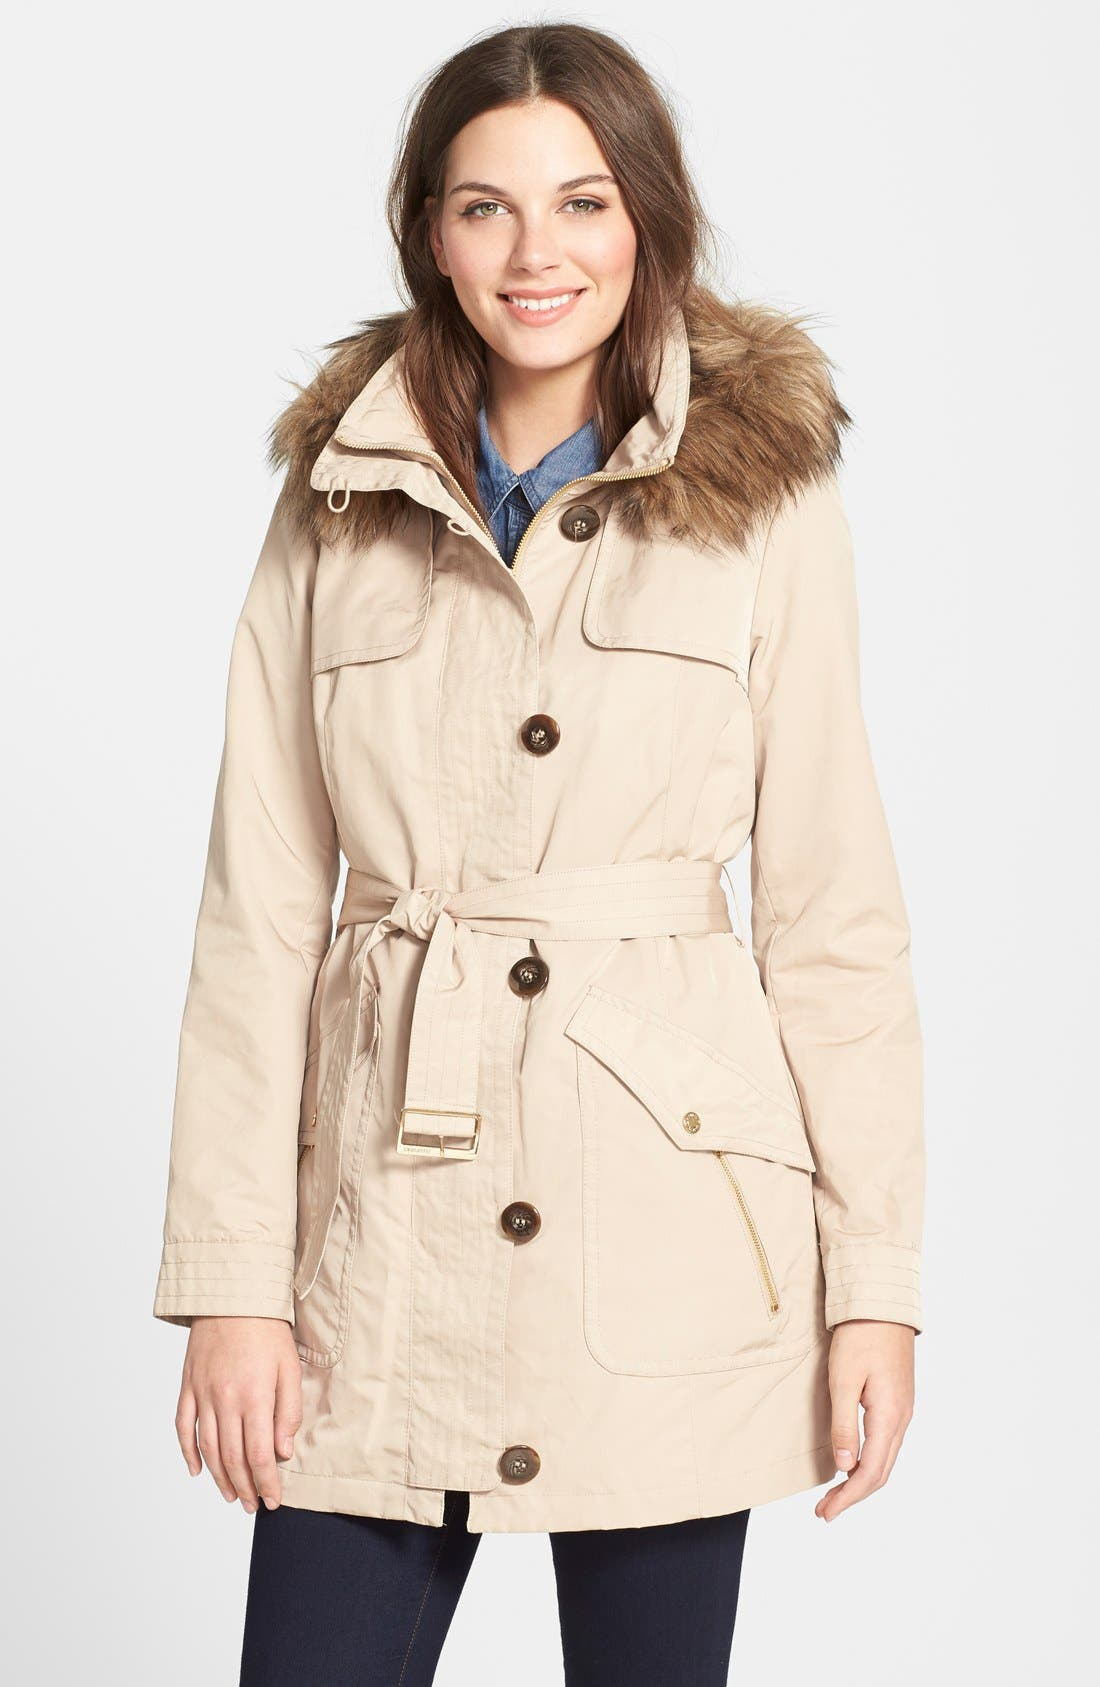 Main Image - Ellen Tracy Belted Trench Coat with Detachable Faux Fur Trim Hood and Liner (Online Only)